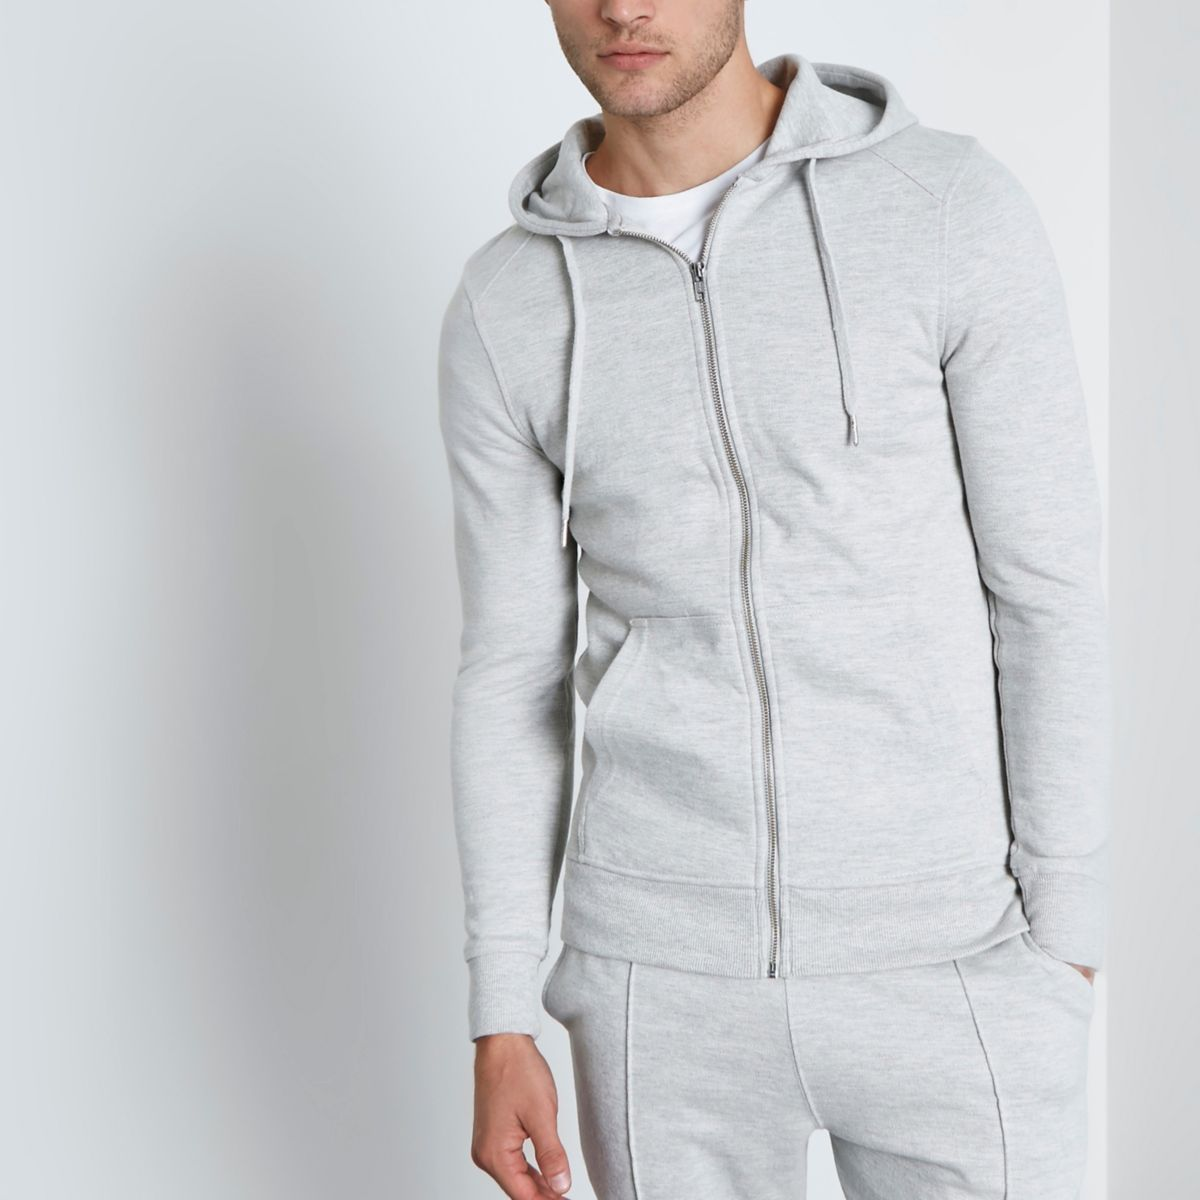 Light grey muscle fit zip-up hoodie